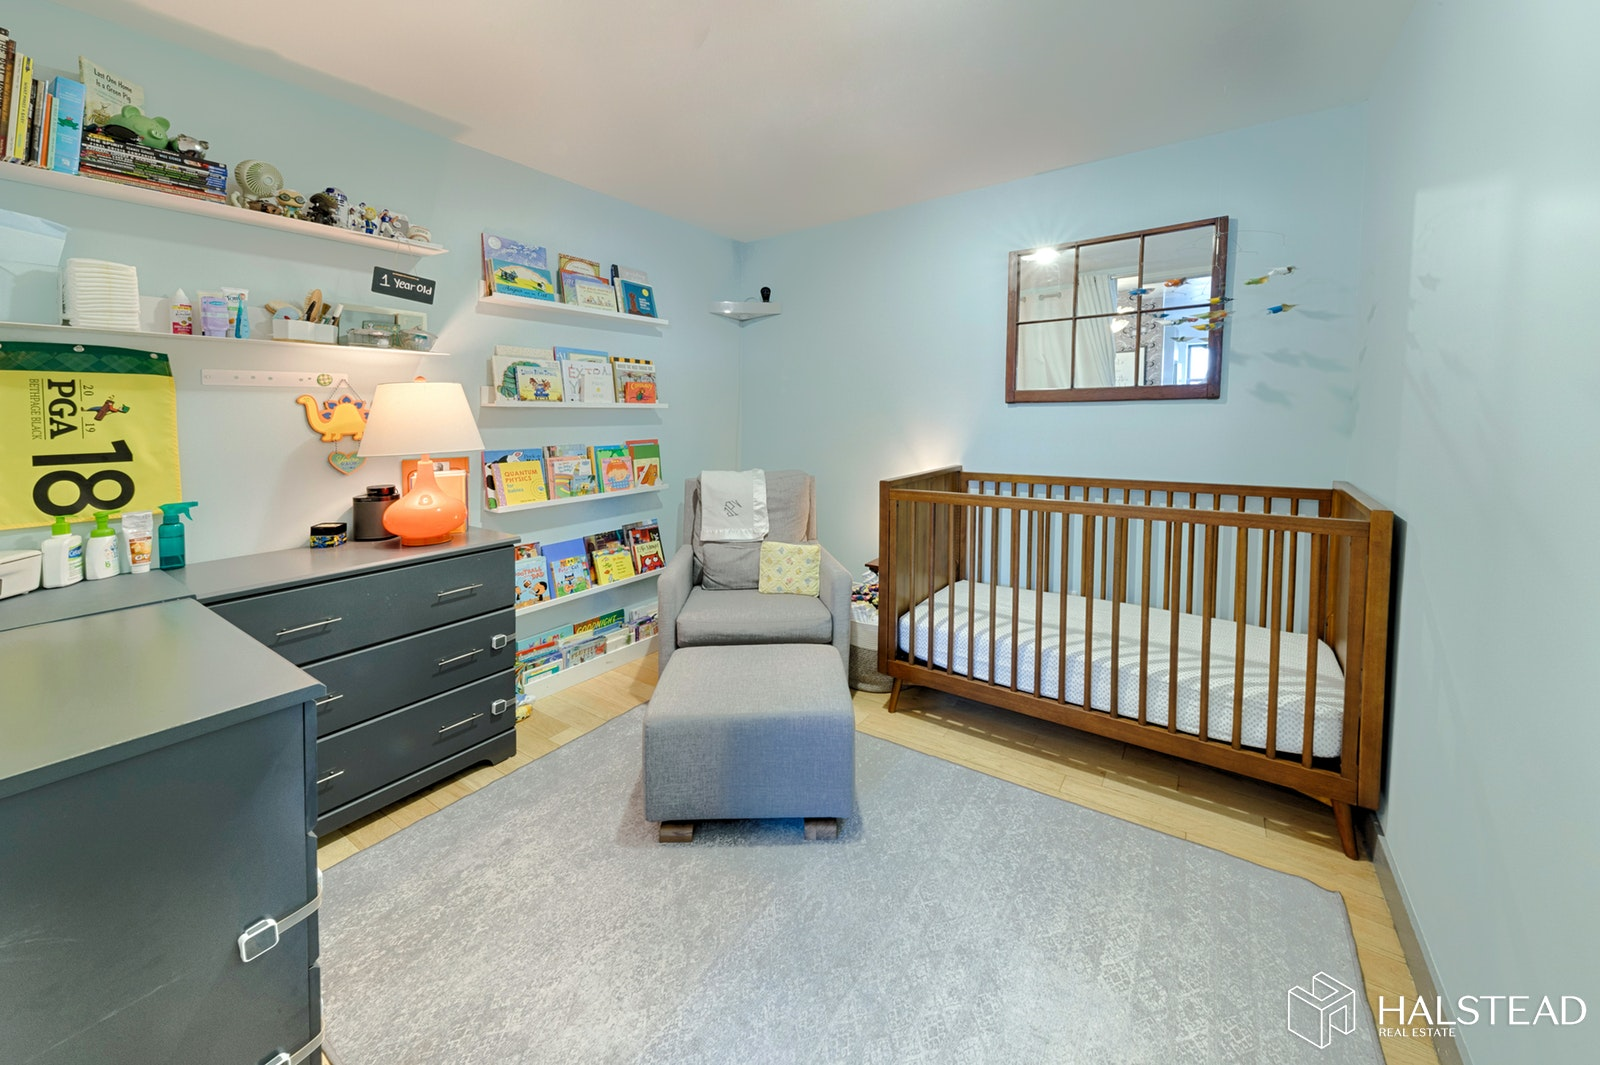 Large One Bed With Home Office & Terrace, Long Island City, Queens, NY, 11101, $1,120,000, Property For Sale, Halstead Real Estate, Photo 5